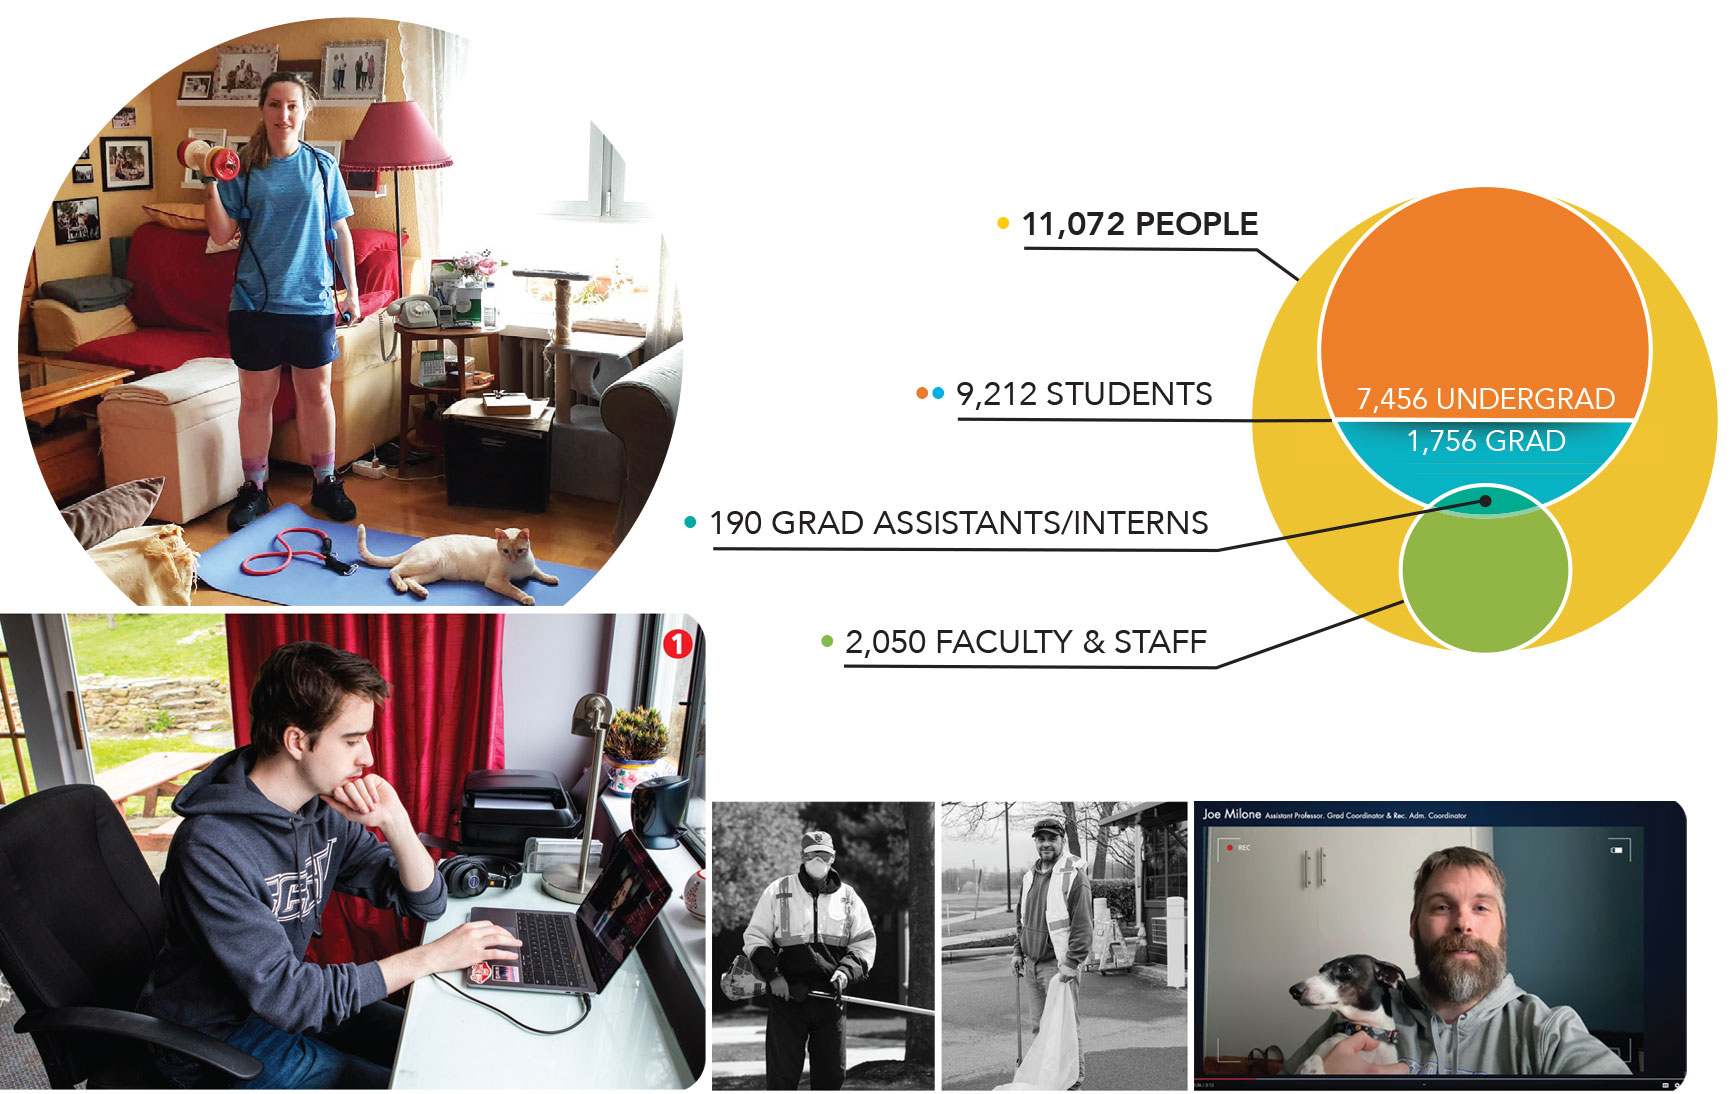 Demographic of SCSU students, Grad assistants/interns/faculty/staff, with collage images